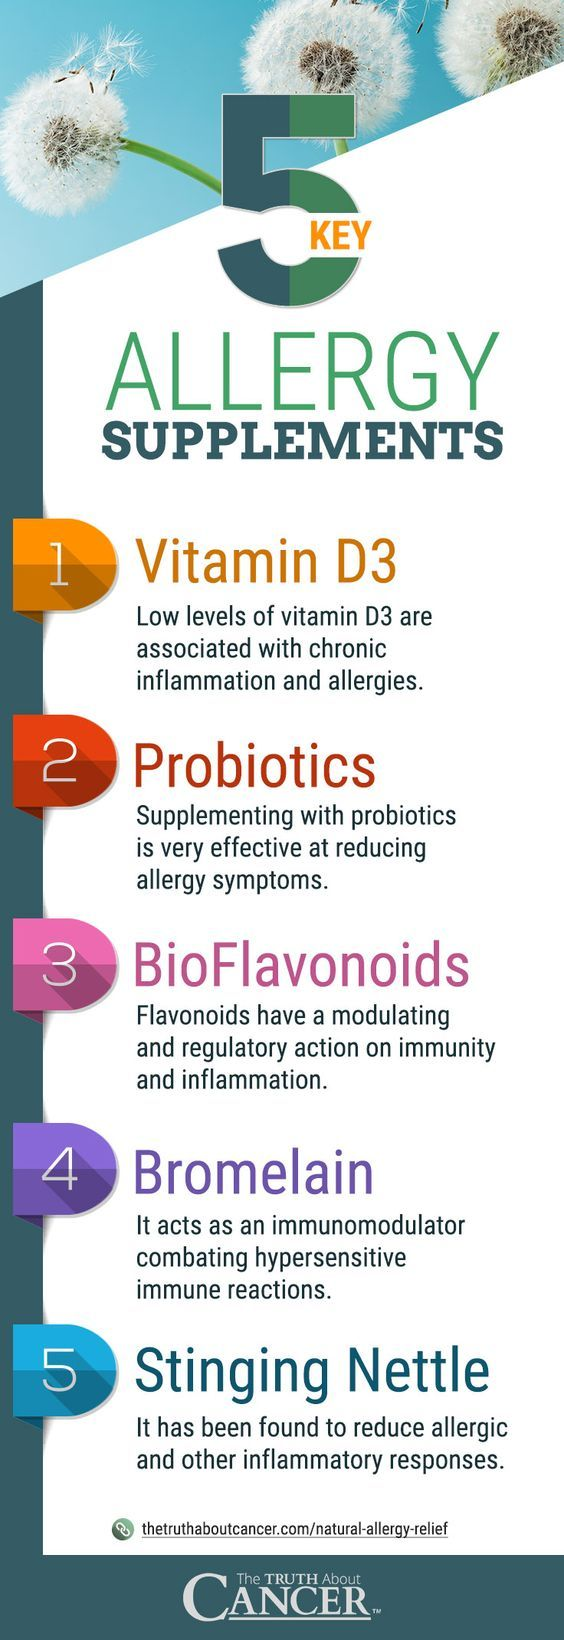 How do you fight allergies naturally? An allergic reaction occurs because the person's immune system treats the pollen as an invader & responds by producing large amounts of antibodies. Here are 5 key allergy supplements: Vitamin D3, Probiotics, BioFlavonoids,  Bromelain, & Stinging Nettle. Click through to read more as Dr. David Jockers also explains the 3 immune system issues that can lead to seasonal allergies & 8 practical lifestyle tips to reduce symptoms of seasonal allergies.